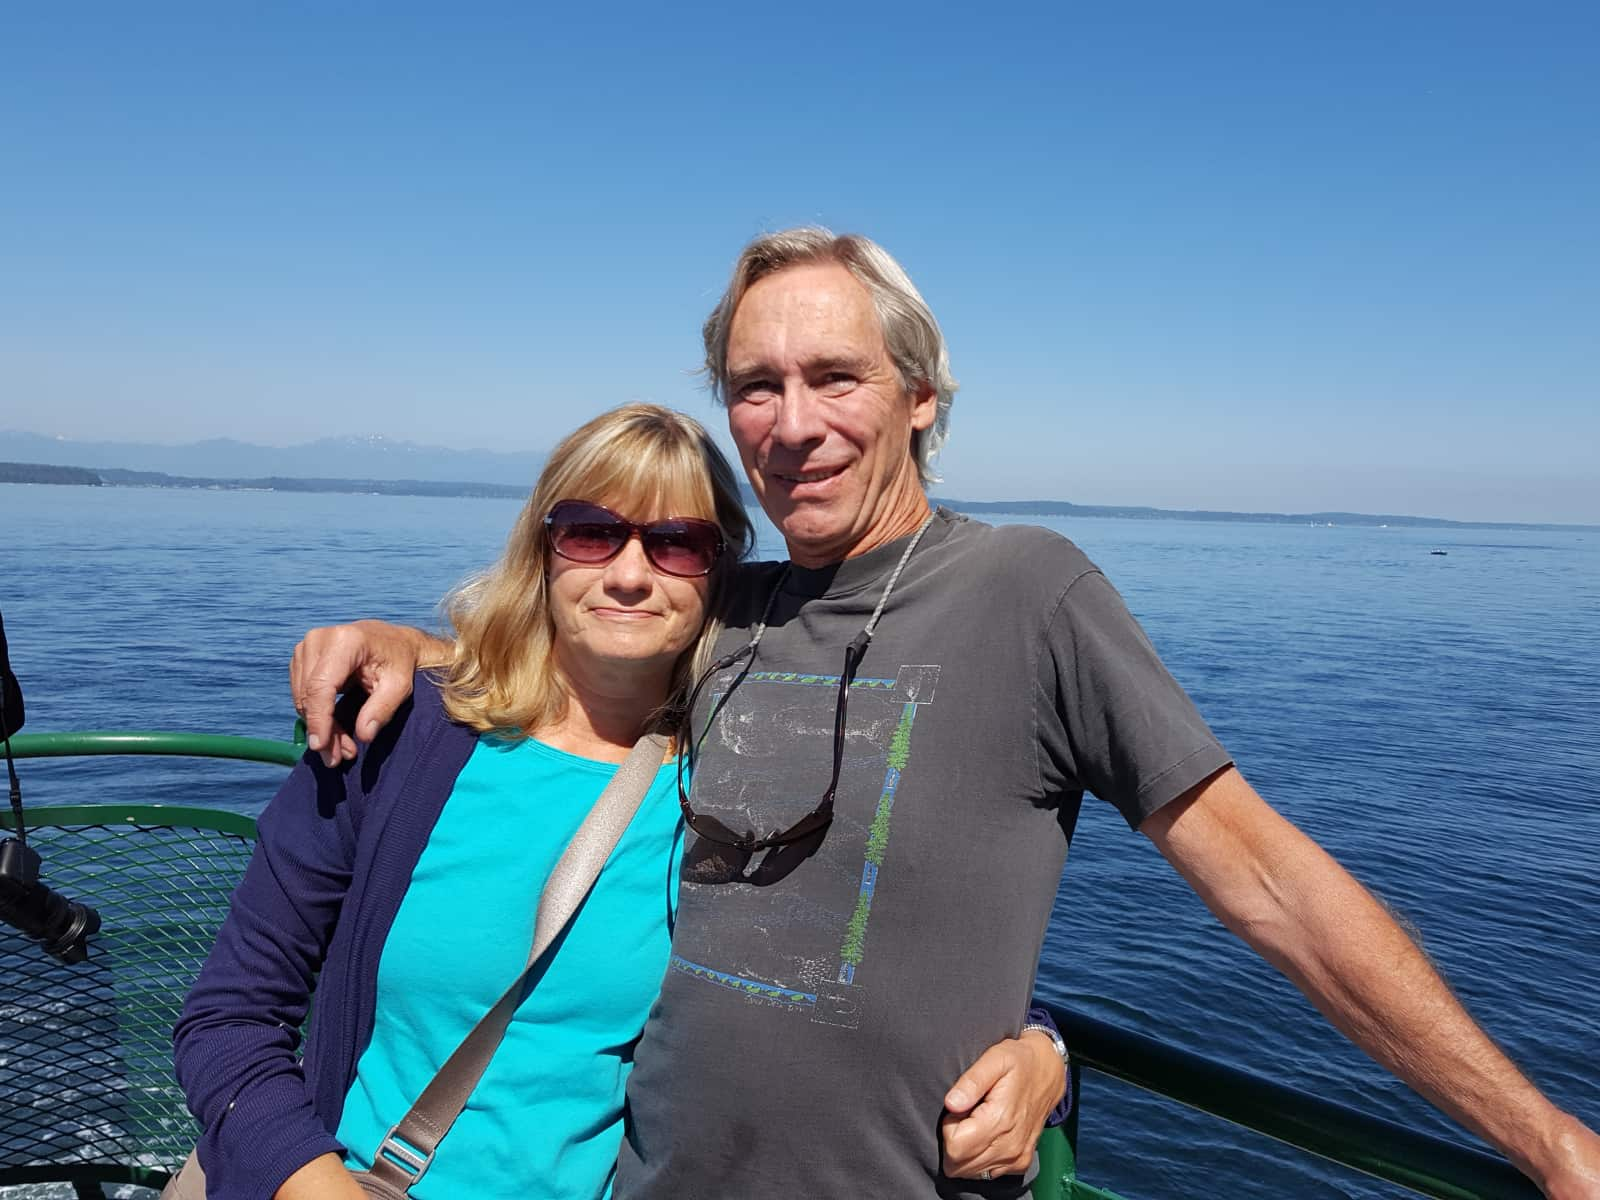 Joan and paul & Joan from Bellingham, Washington, United States